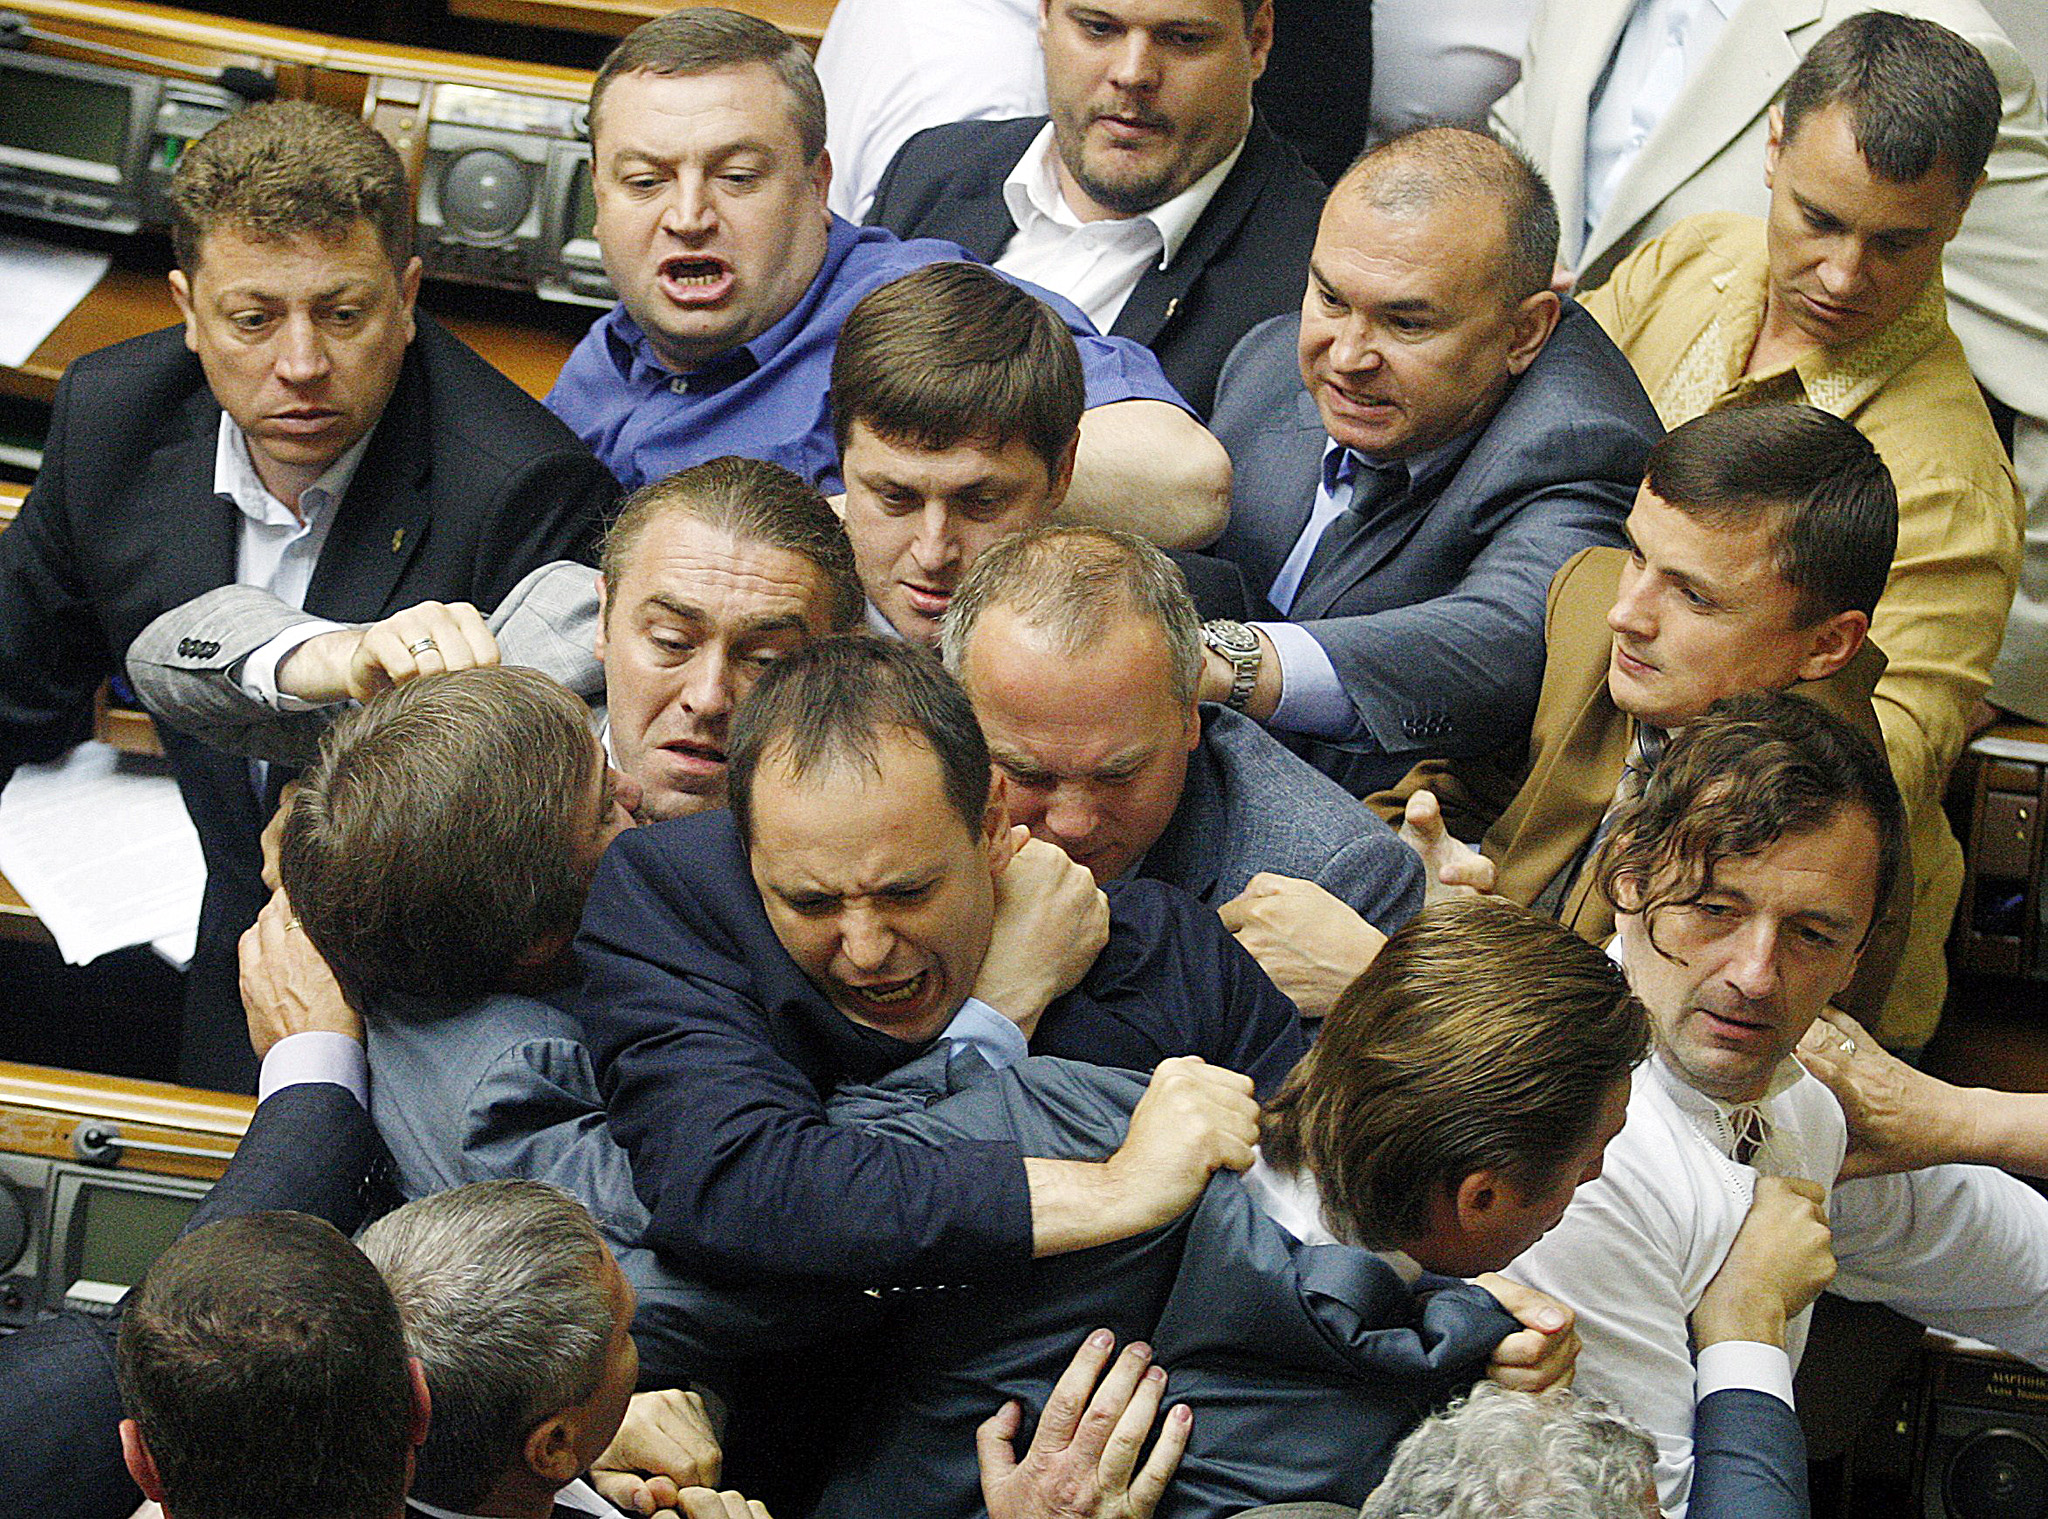 Deputies of the majority fight with the ...Deputies of the majority fight with the deputies of Regions Party, party of former Ukrainian President Viktor Yanukovych, during the debates in the parliament in Kiev on July 22, 2014. The parliament adopted the presidential decree on partial mobilization. AFP PHOTO/ STRSTR/AFP/Getty Images